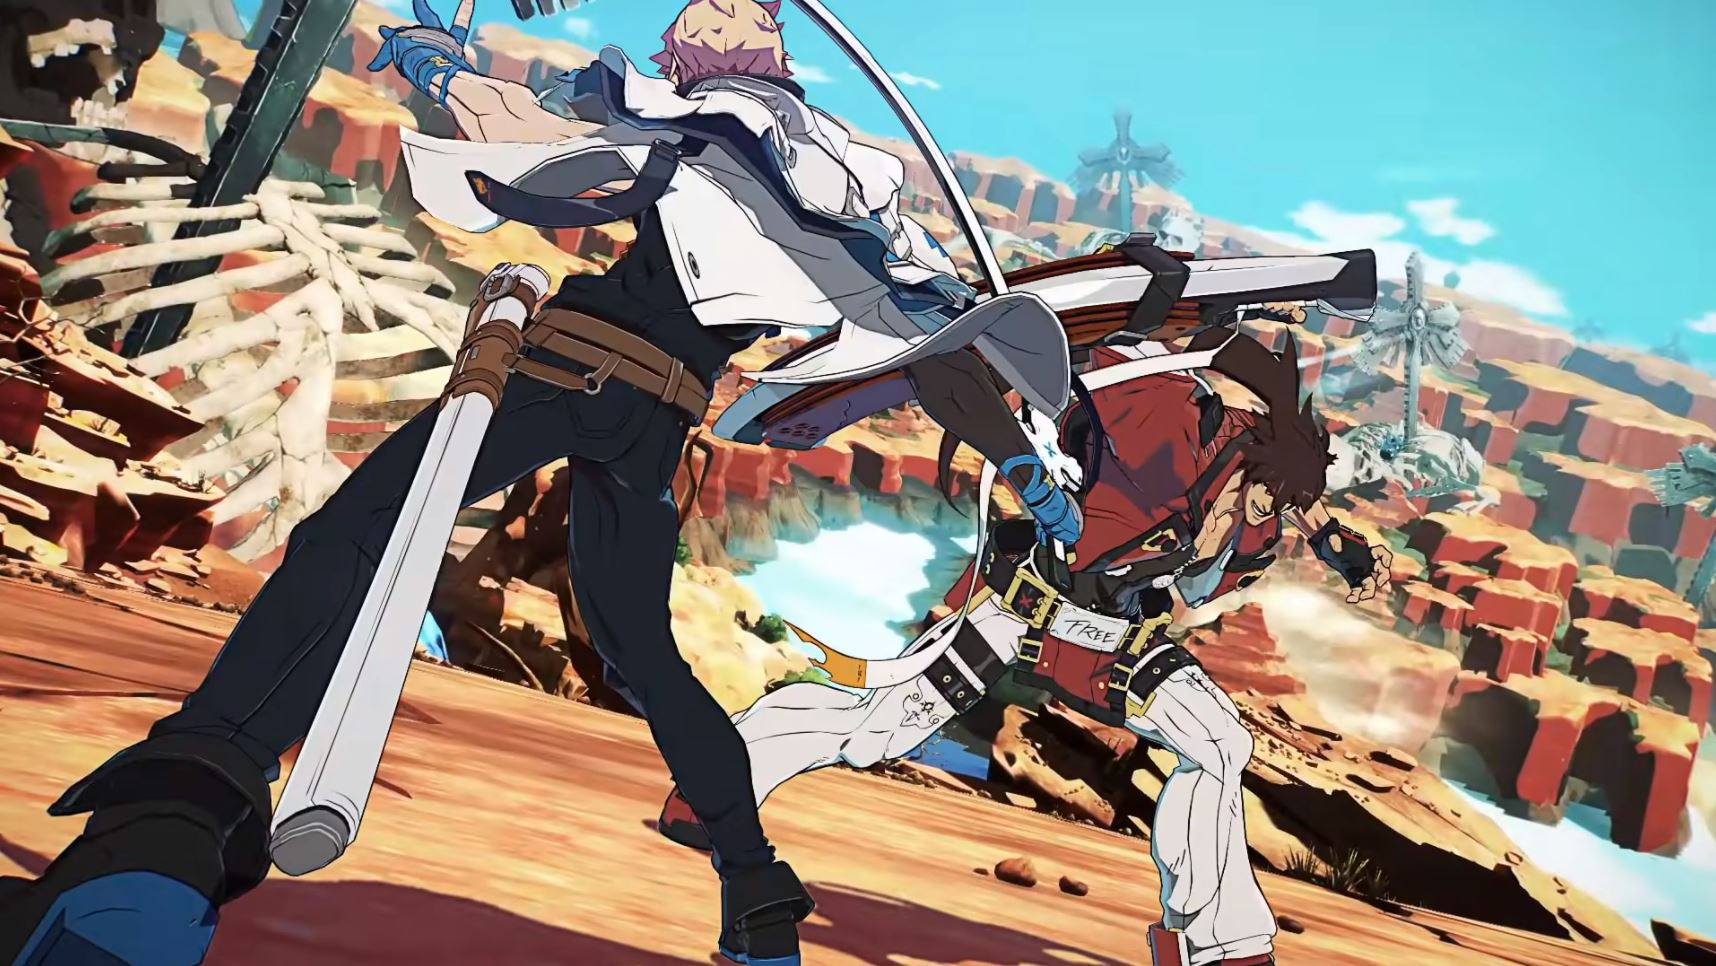 guilty-gear-strive-gets-second-beta-in-may-with-all-characters-playable